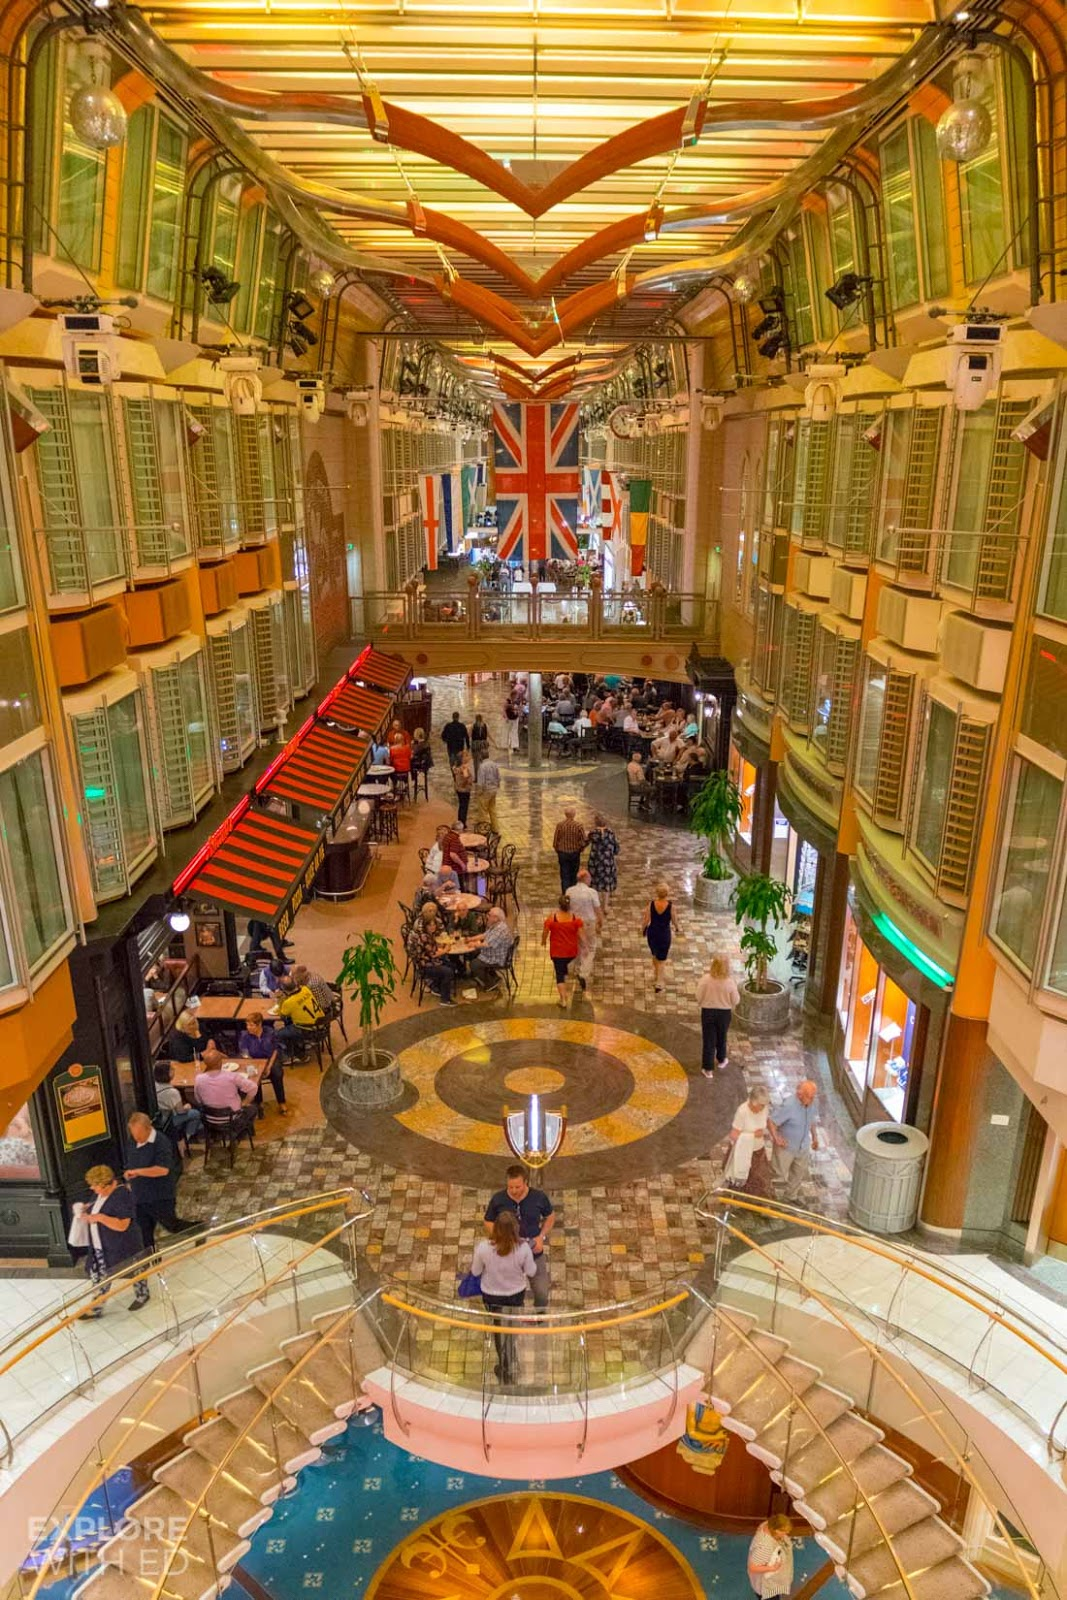 The Royal Promenade Independence of the Seas